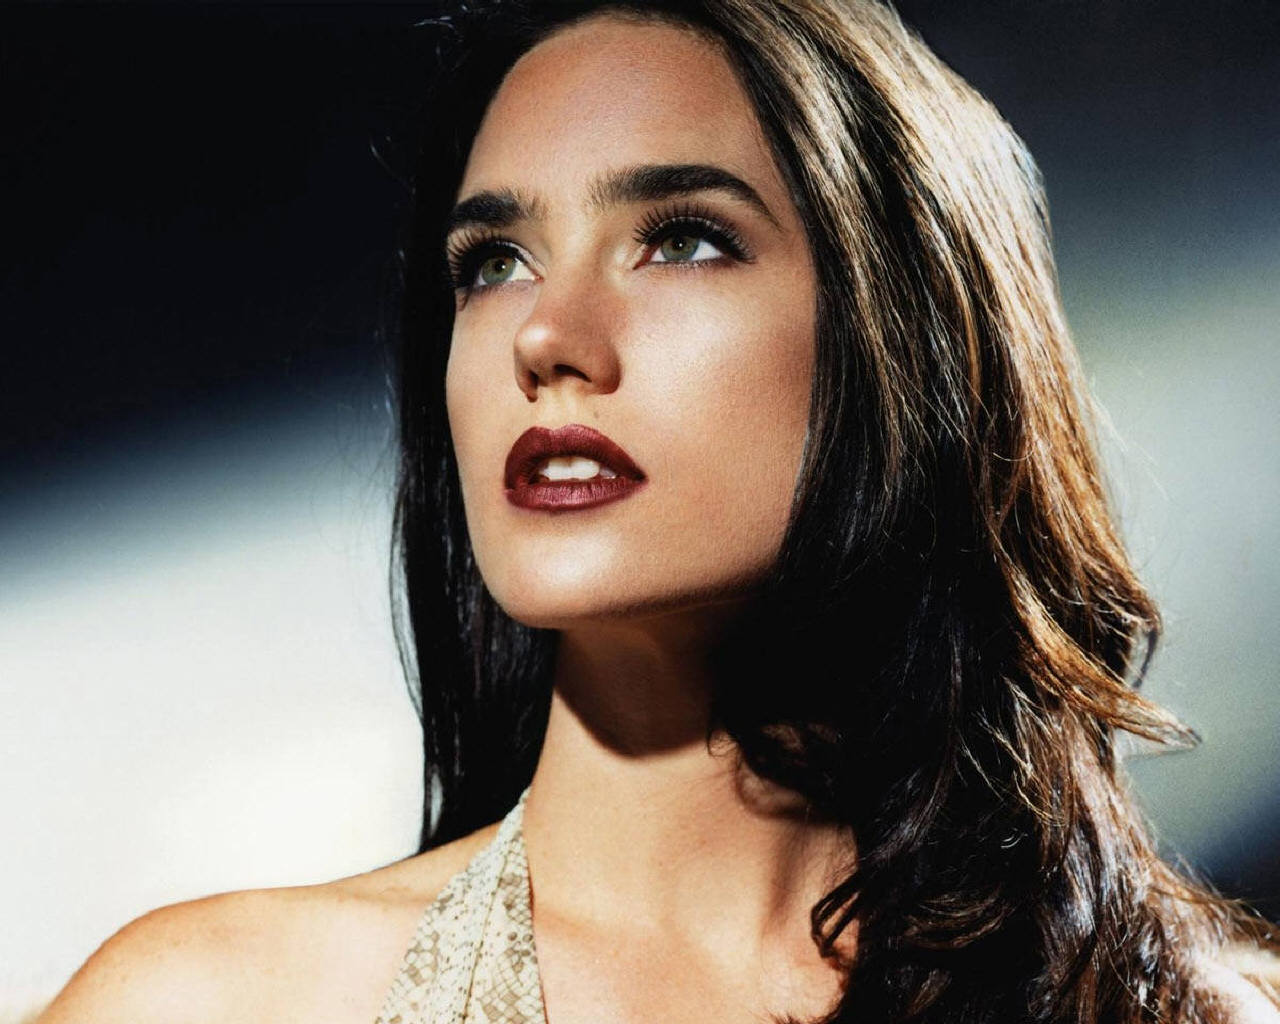 best ideas about jennifer connelly hulk jennifer 17 best ideas about jennifer connelly hulk jennifer connelly classic beauty and jennifer conely